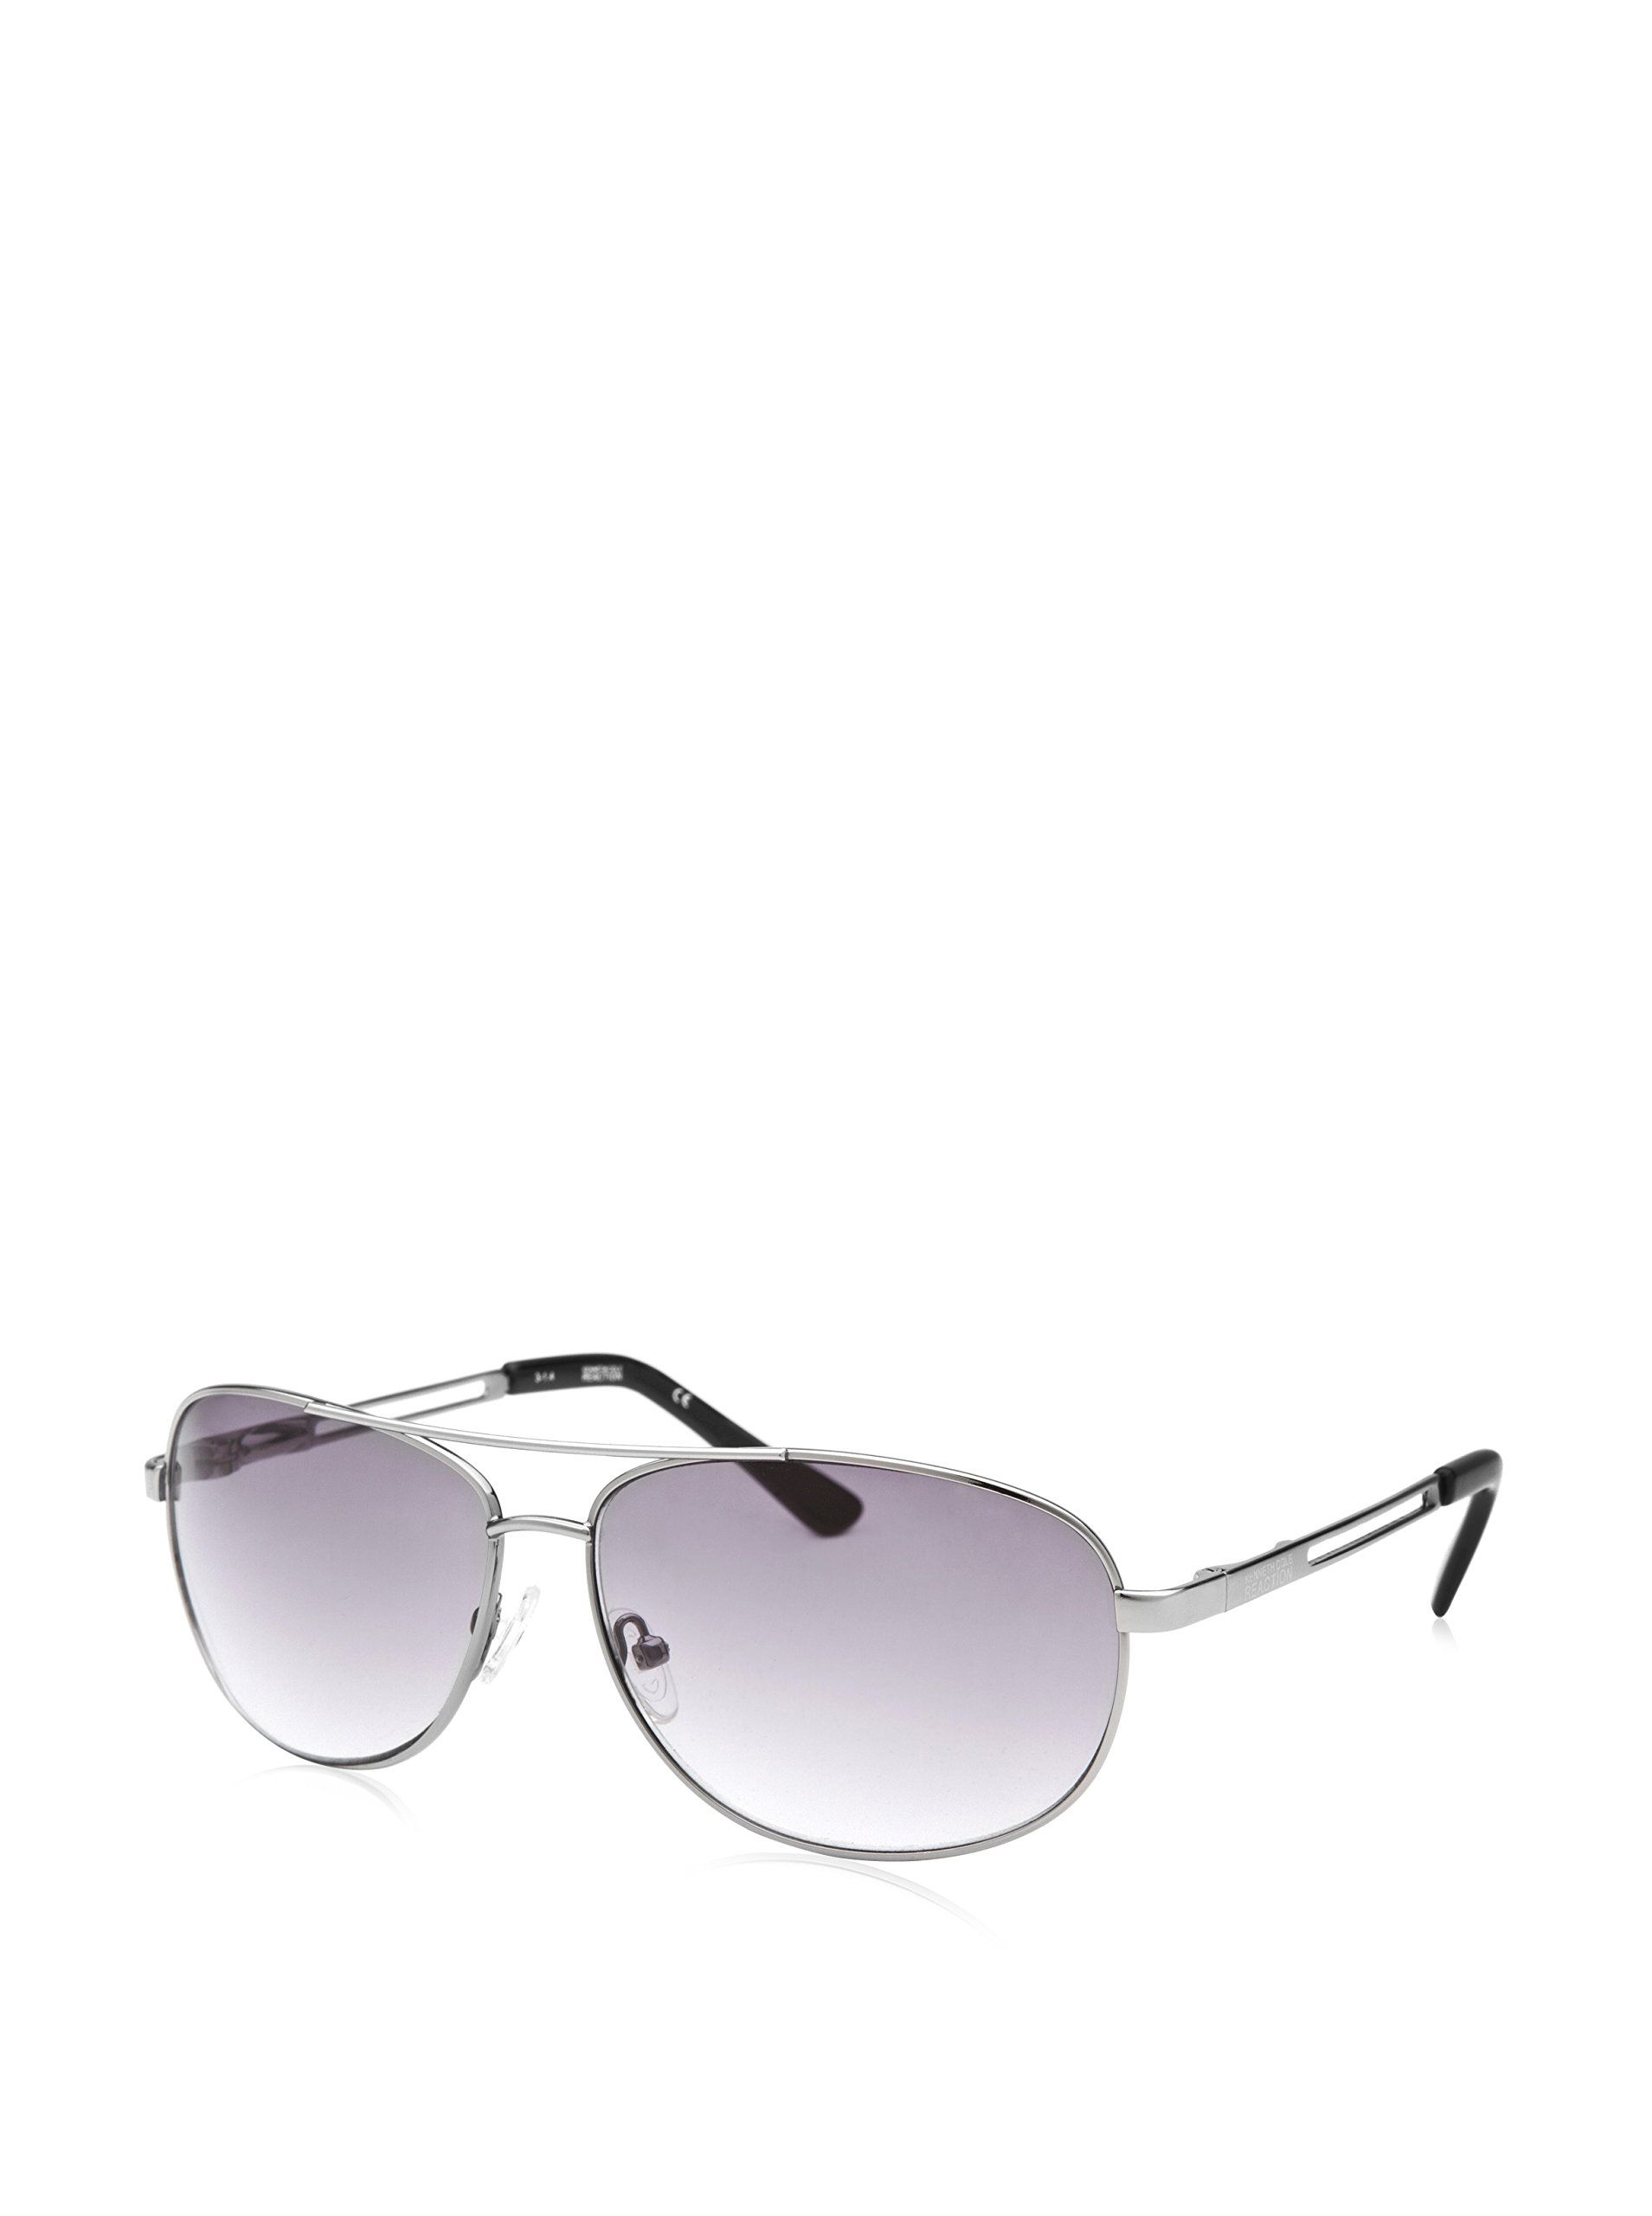 550021bf0ff awesome Kenneth Cole Reaction Men's Sunglasses KCR1069-O753,  Silver-Tone/Grey Gradient